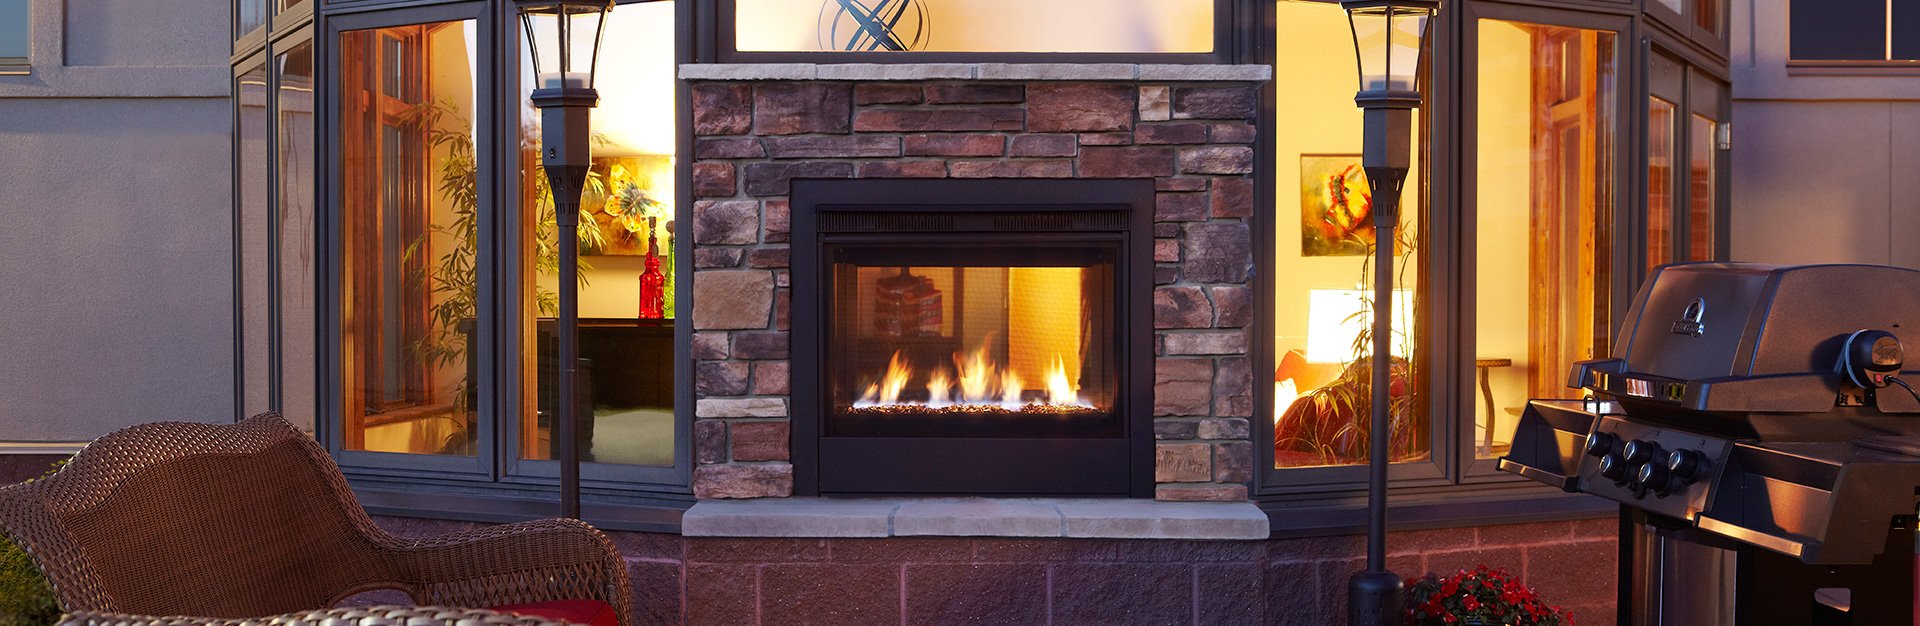 Amanda 39 S Fireplace Upstate New York 39 S Premier Fireplace Sales And Service Vendor